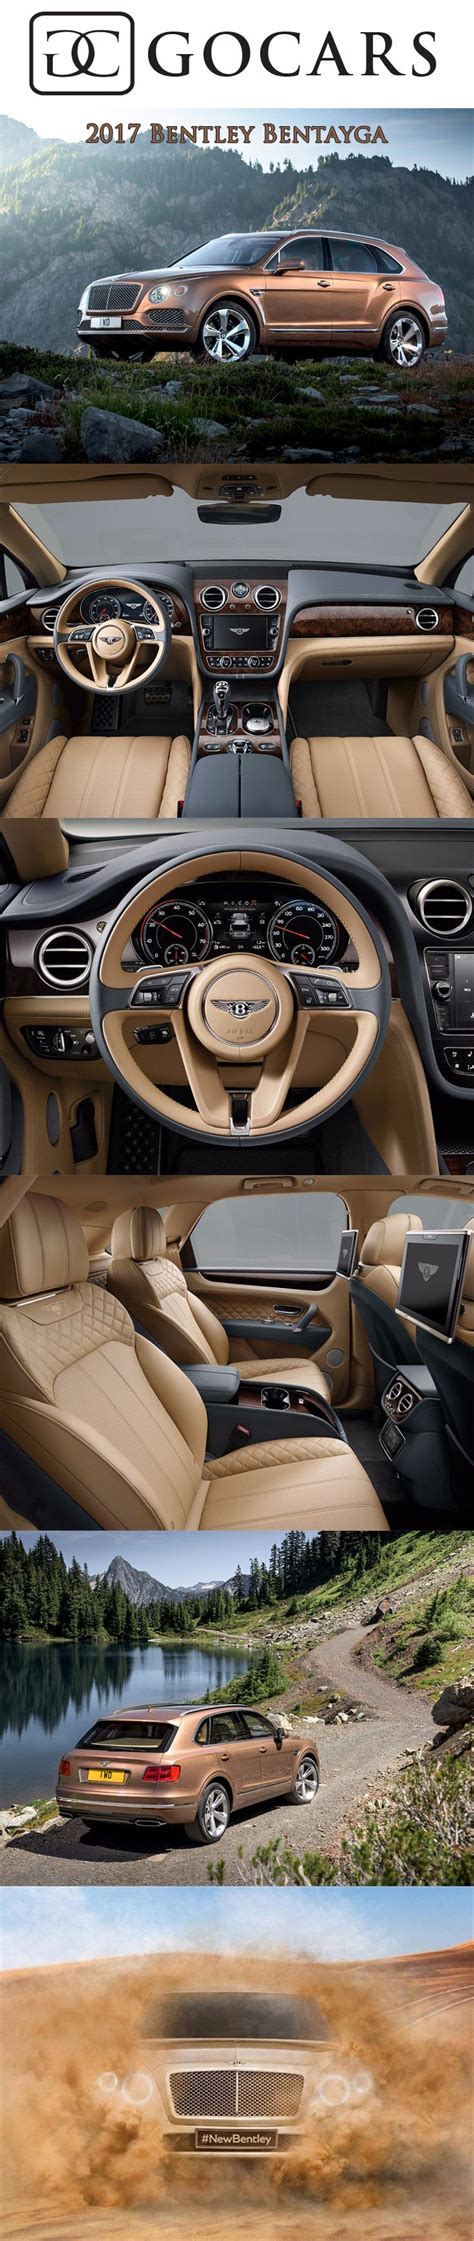 bentley orangutan 100 bugatti suv interior citro 235 n c5 aircross review